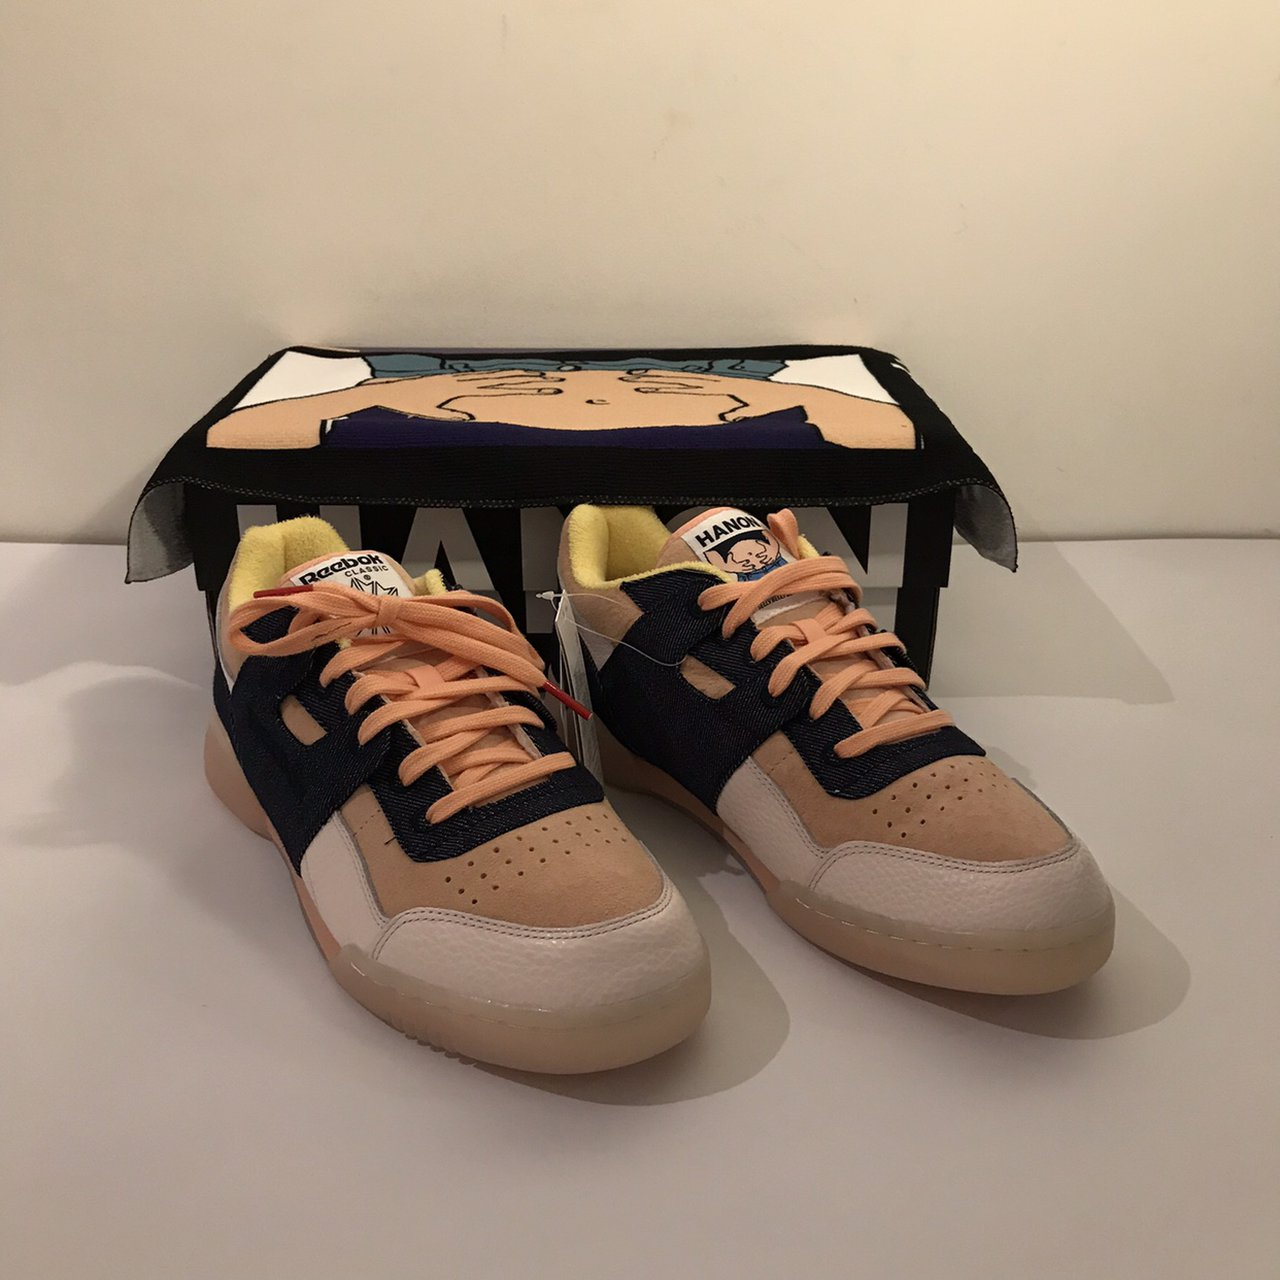 "Hanon x Reebok workout lo plus ""belly s gonna get you"" brand - Depop f039cec93"